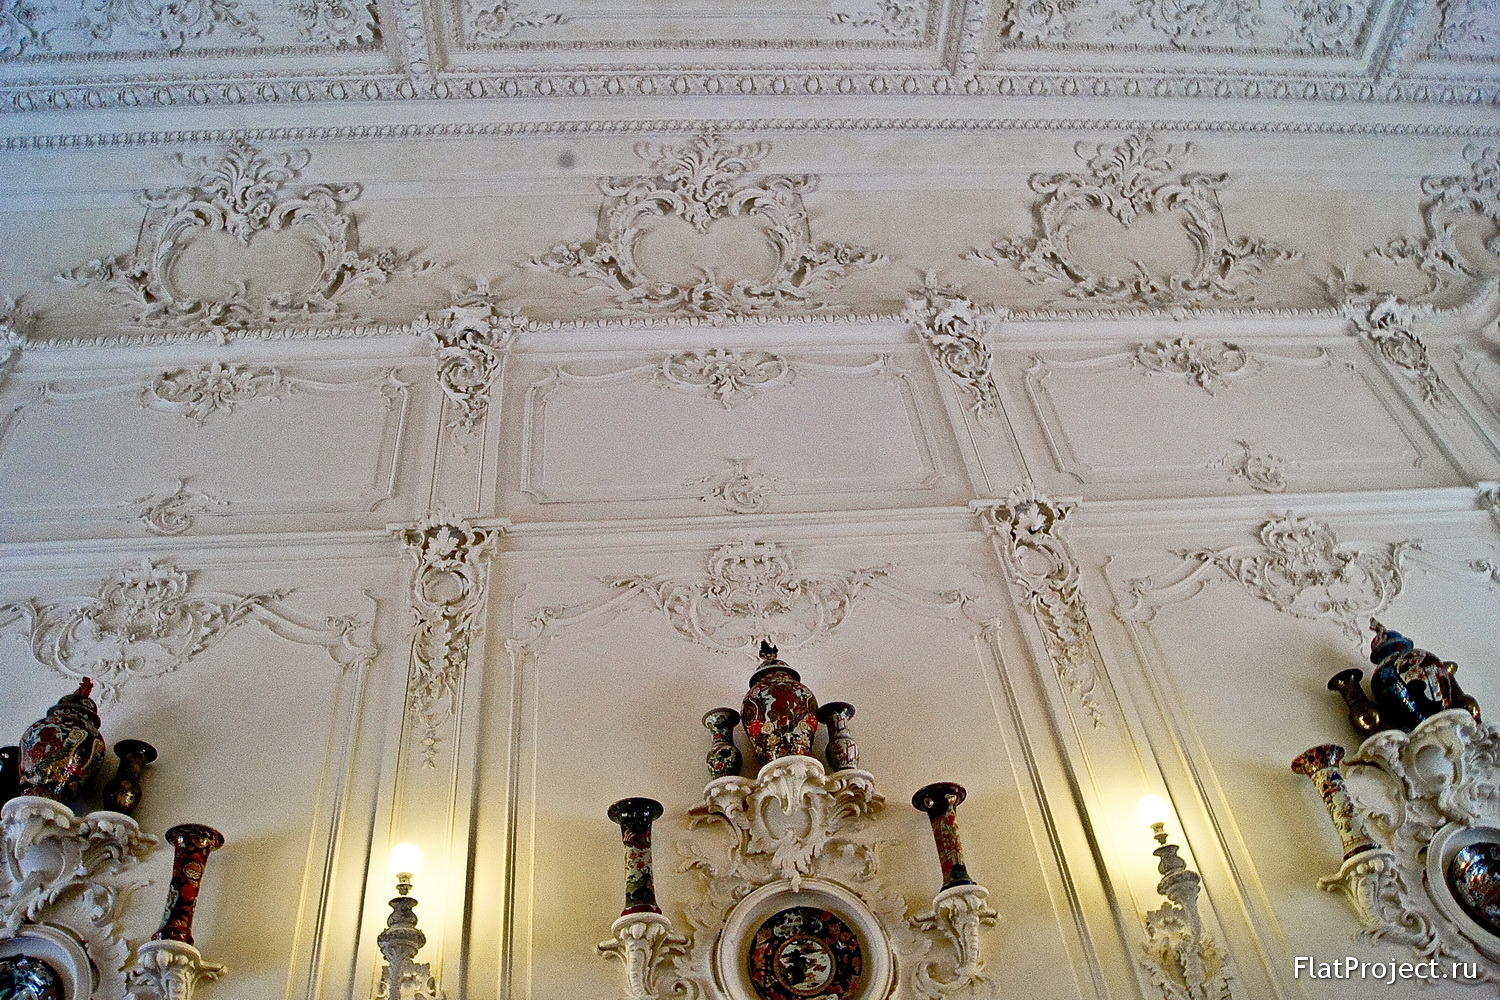 The Catherine Palace interiors – photo 5